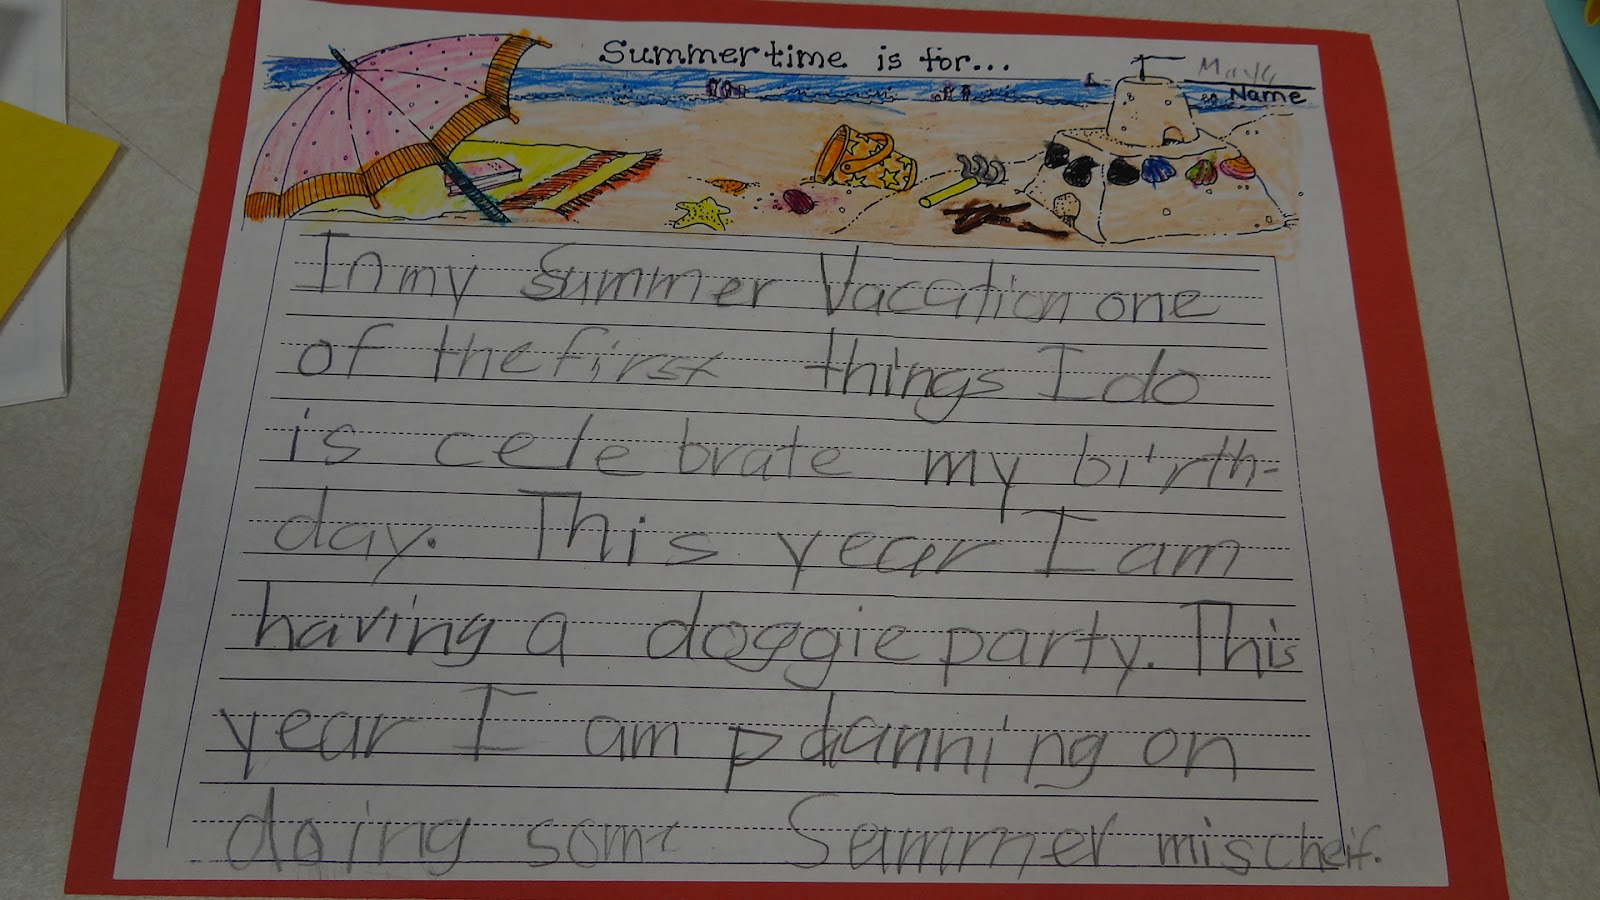 essay on summer season for kids Kids learn about the science of the seasons - winter, spring, summer, and autumn why we have them due to the earth's tilt.